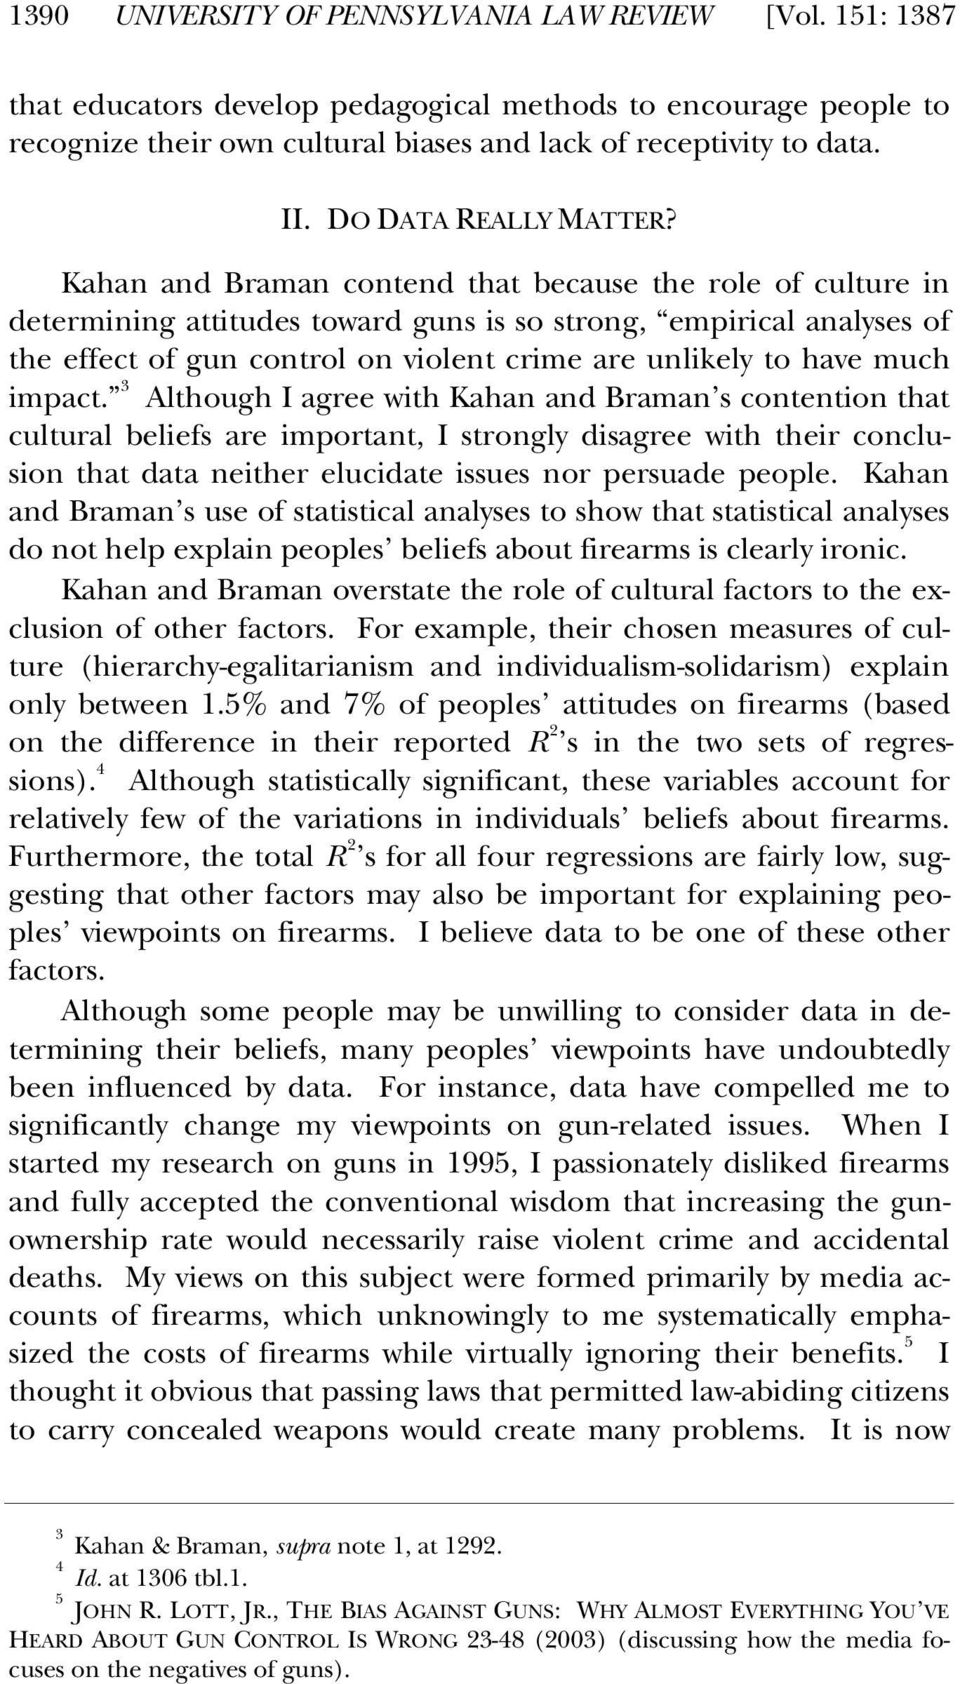 Kahan and Braman contend that because the role of culture in determining attitudes toward guns is so strong, empirical analyses of the effect of gun control on violent crime are unlikely to have much